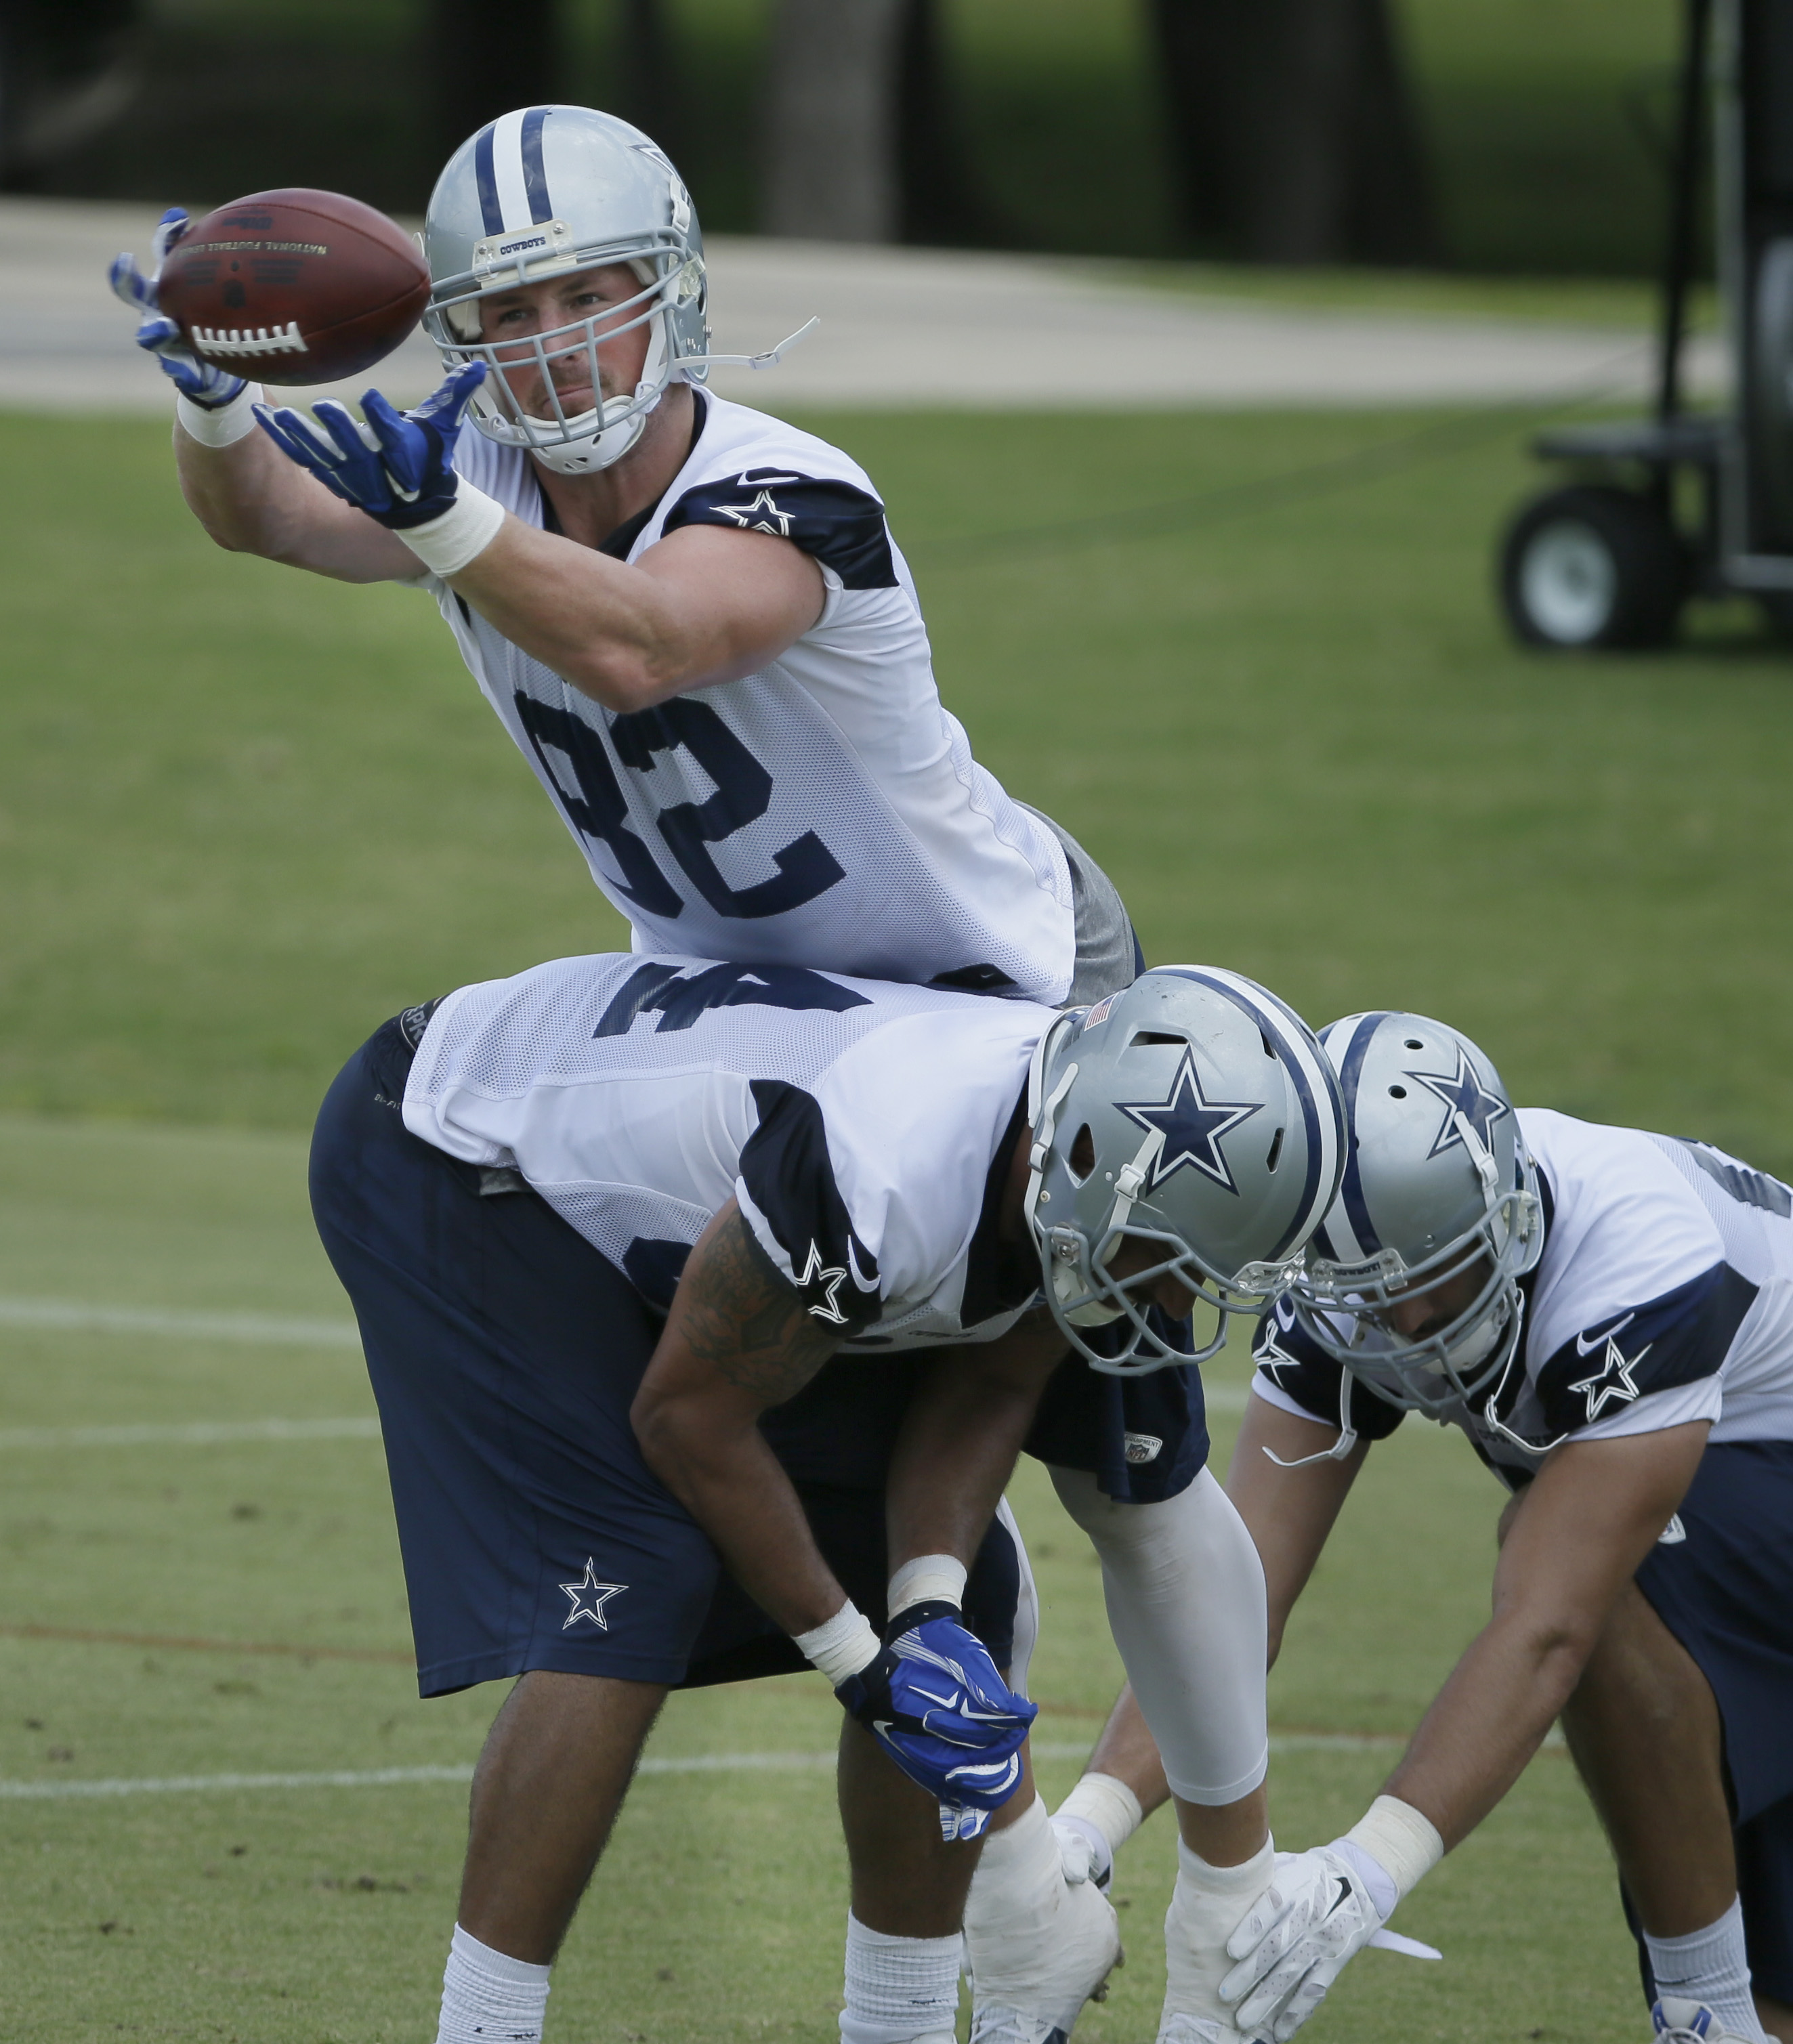 Dallas Cowboys tight end Jason Witten (82) runs a catching drill with fellow tight ends James Hanna (84) and Gavin Escobar, right, during an NFL football organized team activity,  Wednesday, June 3, 2015, in Irving, Texas. (AP Photo/LM Otero)